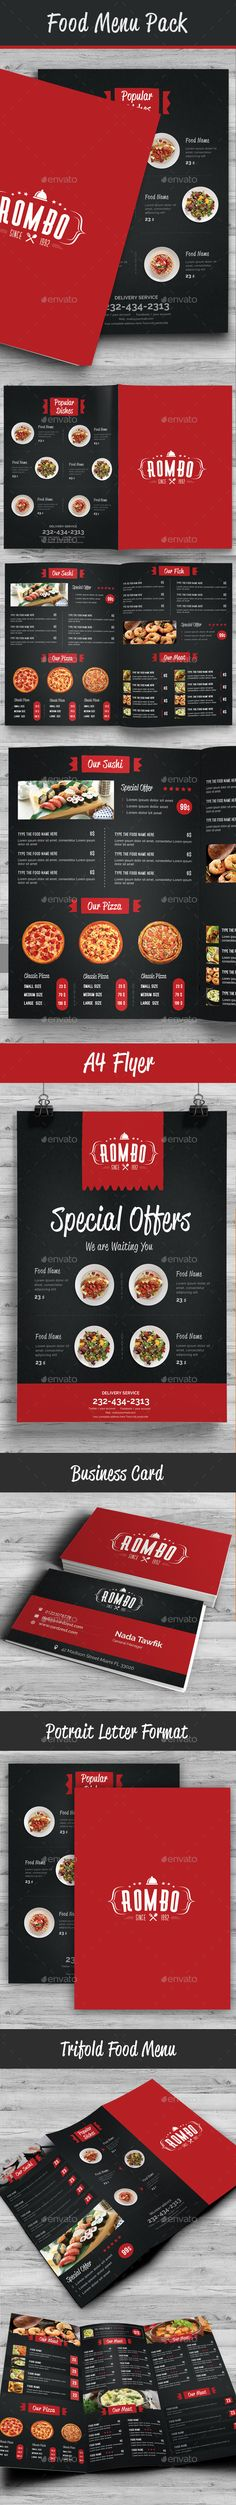 Food Menu Pack 10 — Photoshop PSD #restaurant menu #delicious menu • Available here → https://graphicriver.net/item/food-menu-pack-10/14174869?ref=pxcr